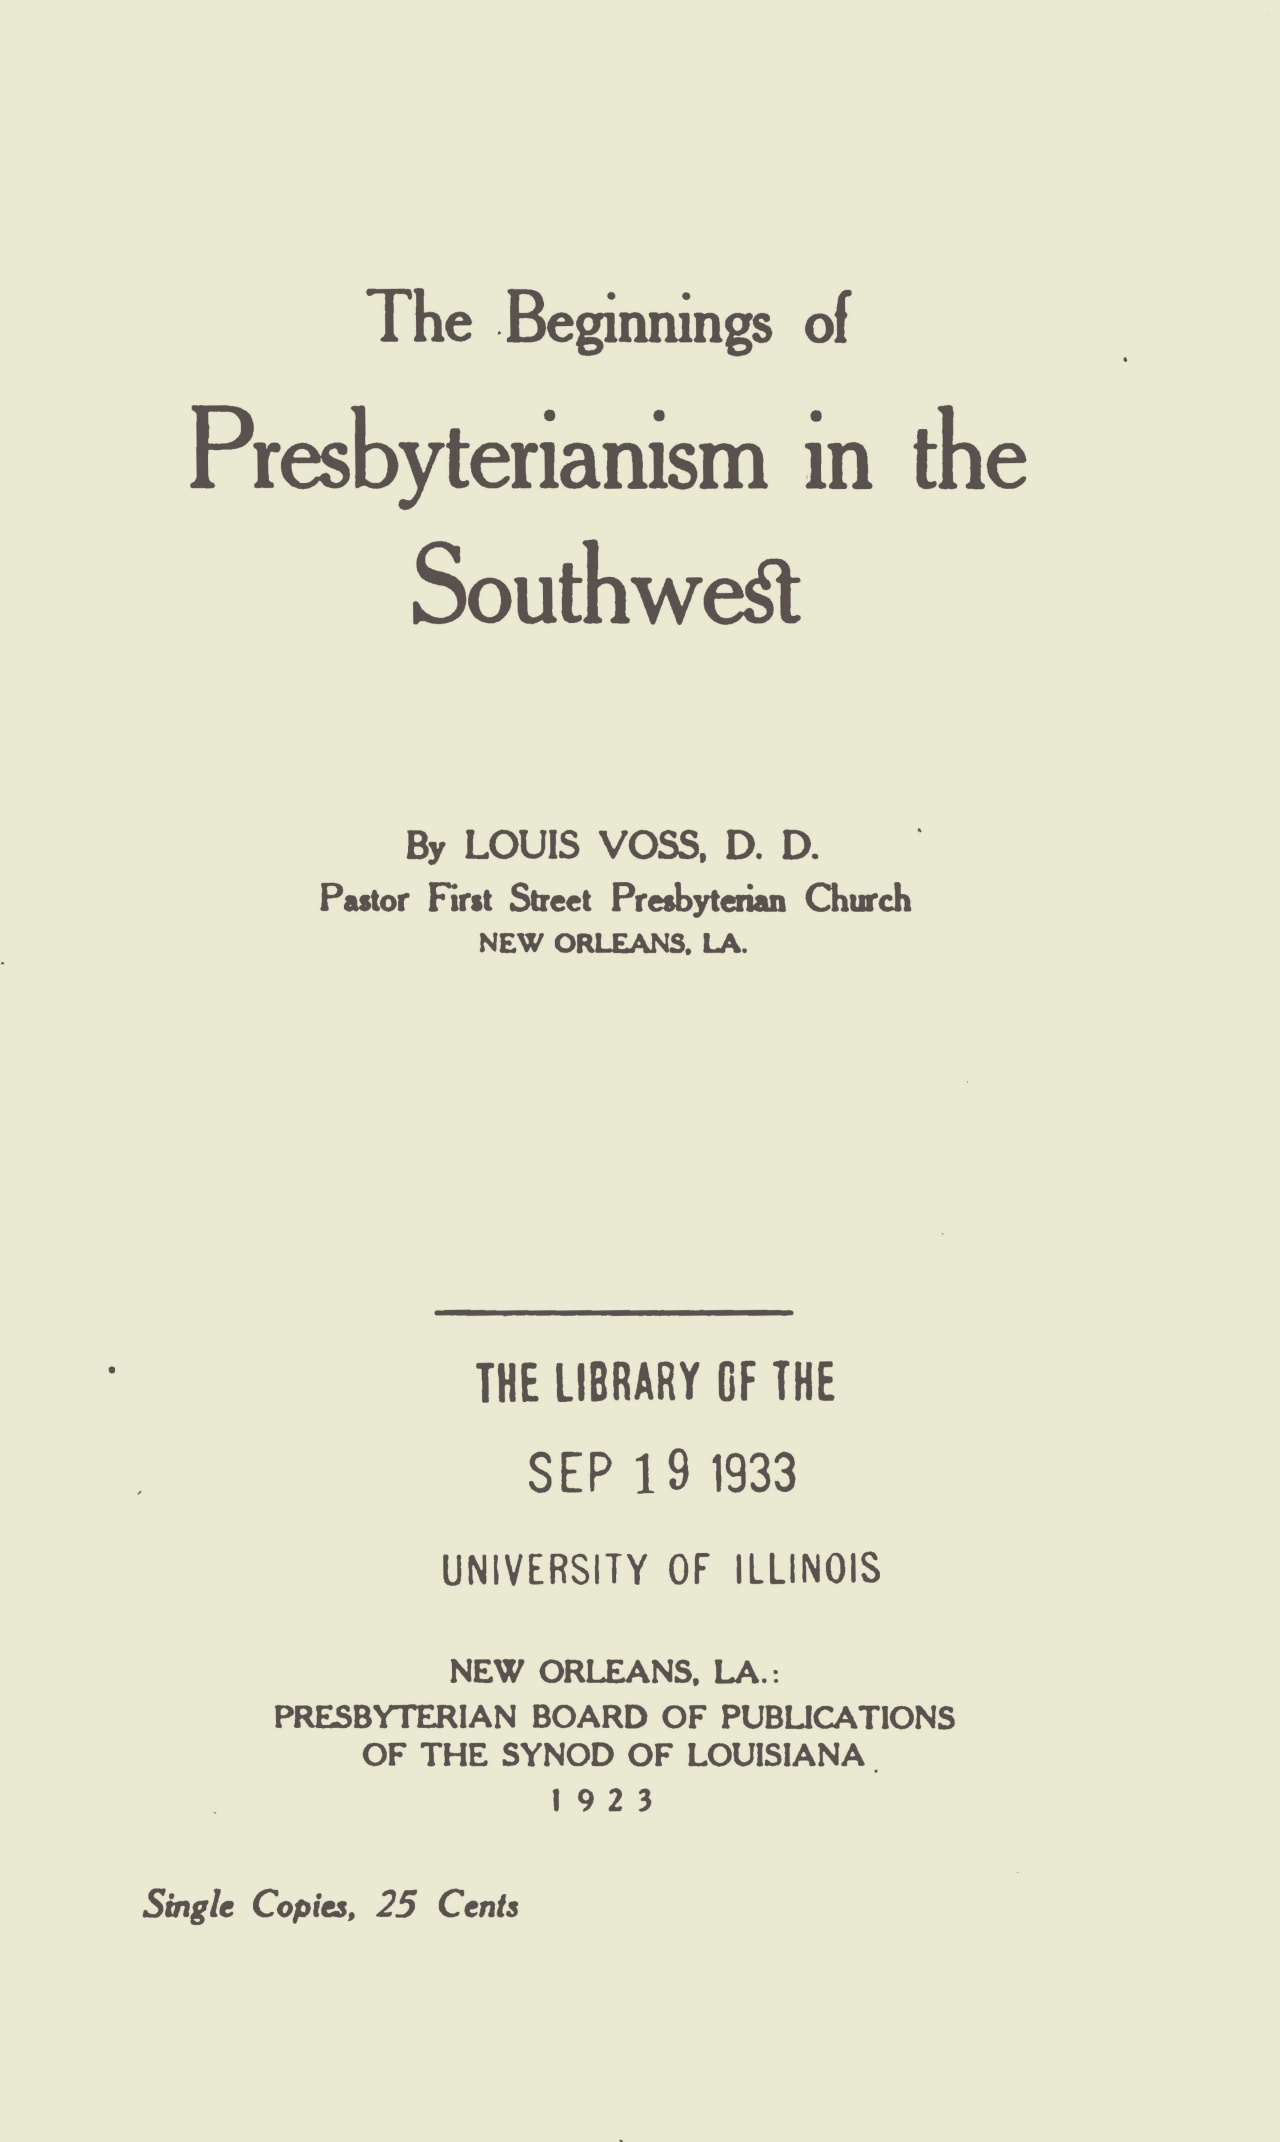 Voss, Louis, The Beginnings of Presbyterianism in the Southwest Title Page.jpg